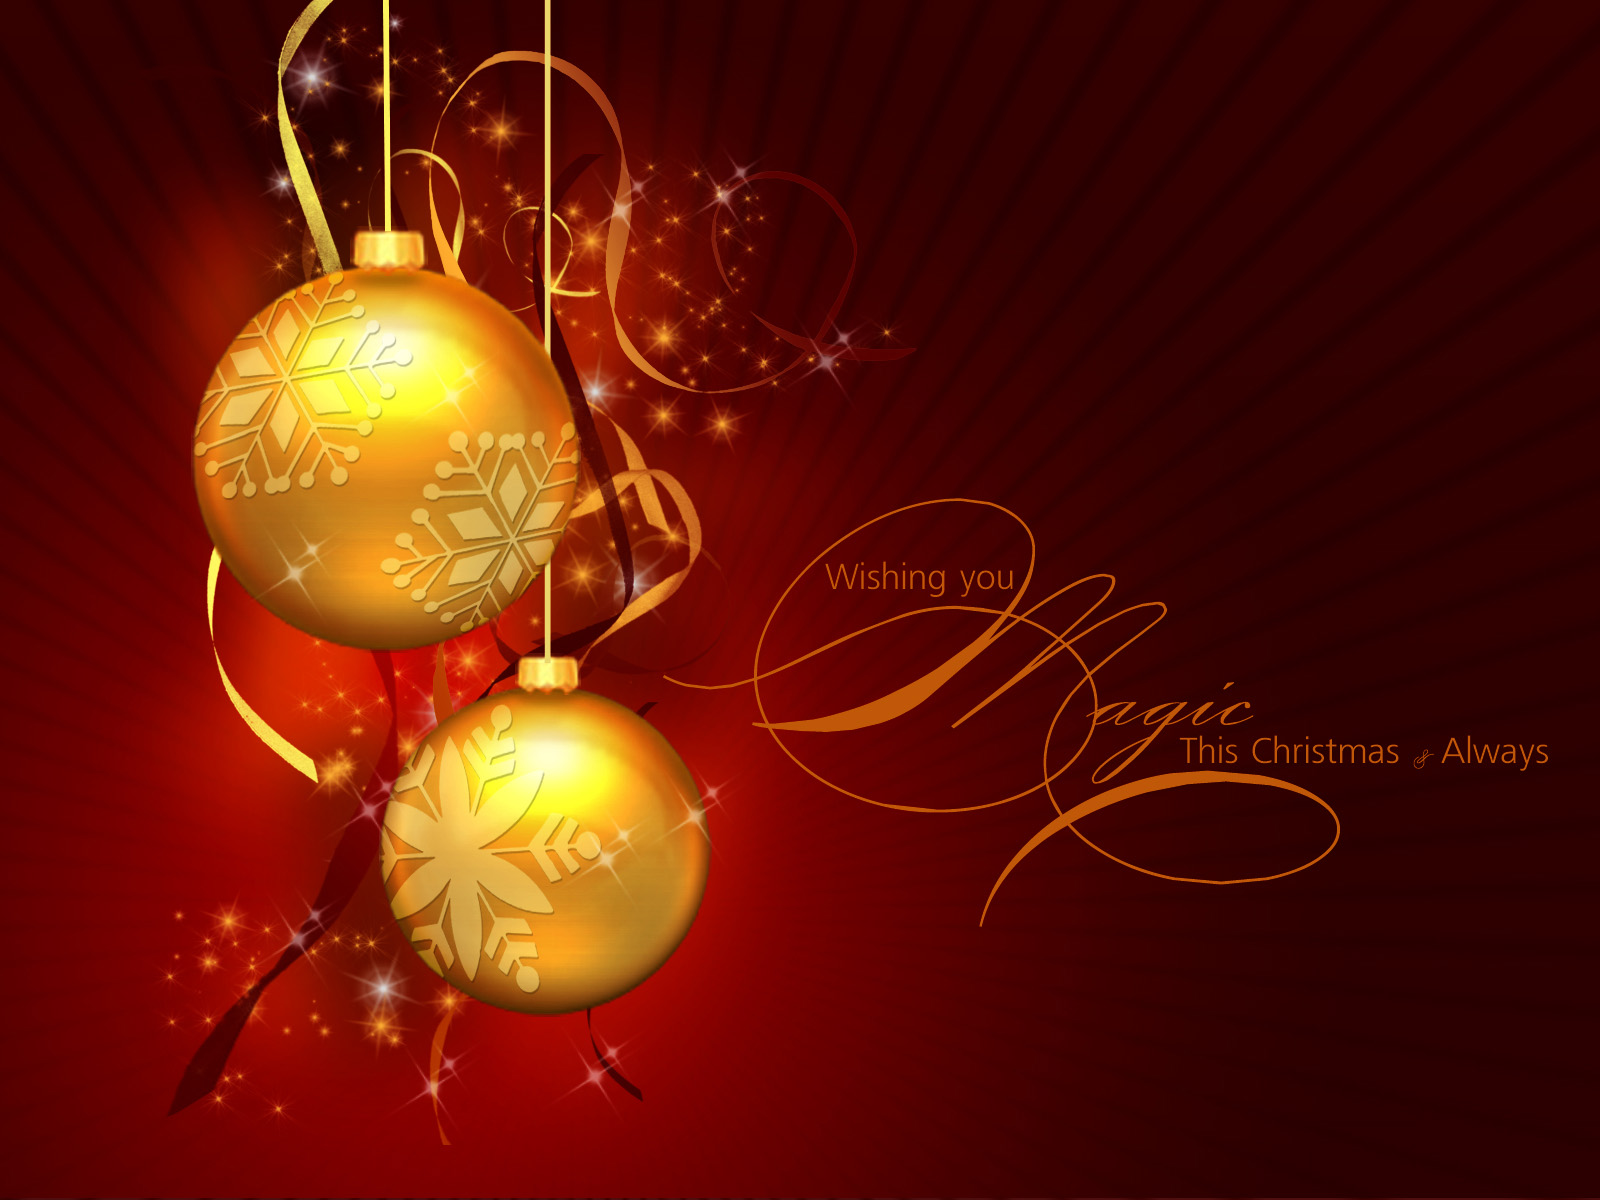 Abstract Christmas Desktop Wallpaper 3d Wallpapers Wallpaper